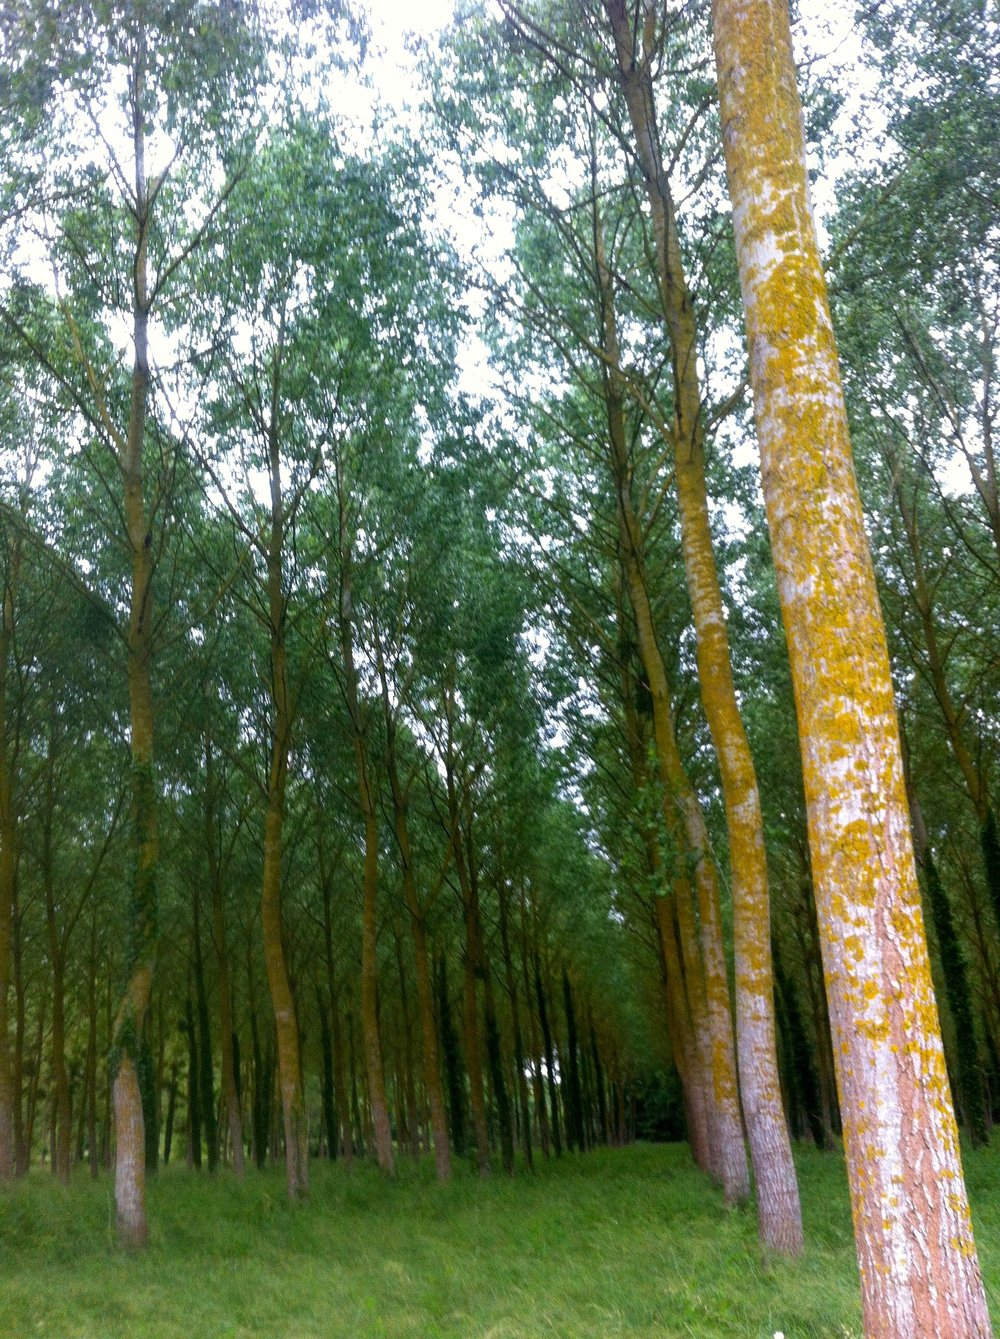 Trees  planted in rows, whichever way you looked